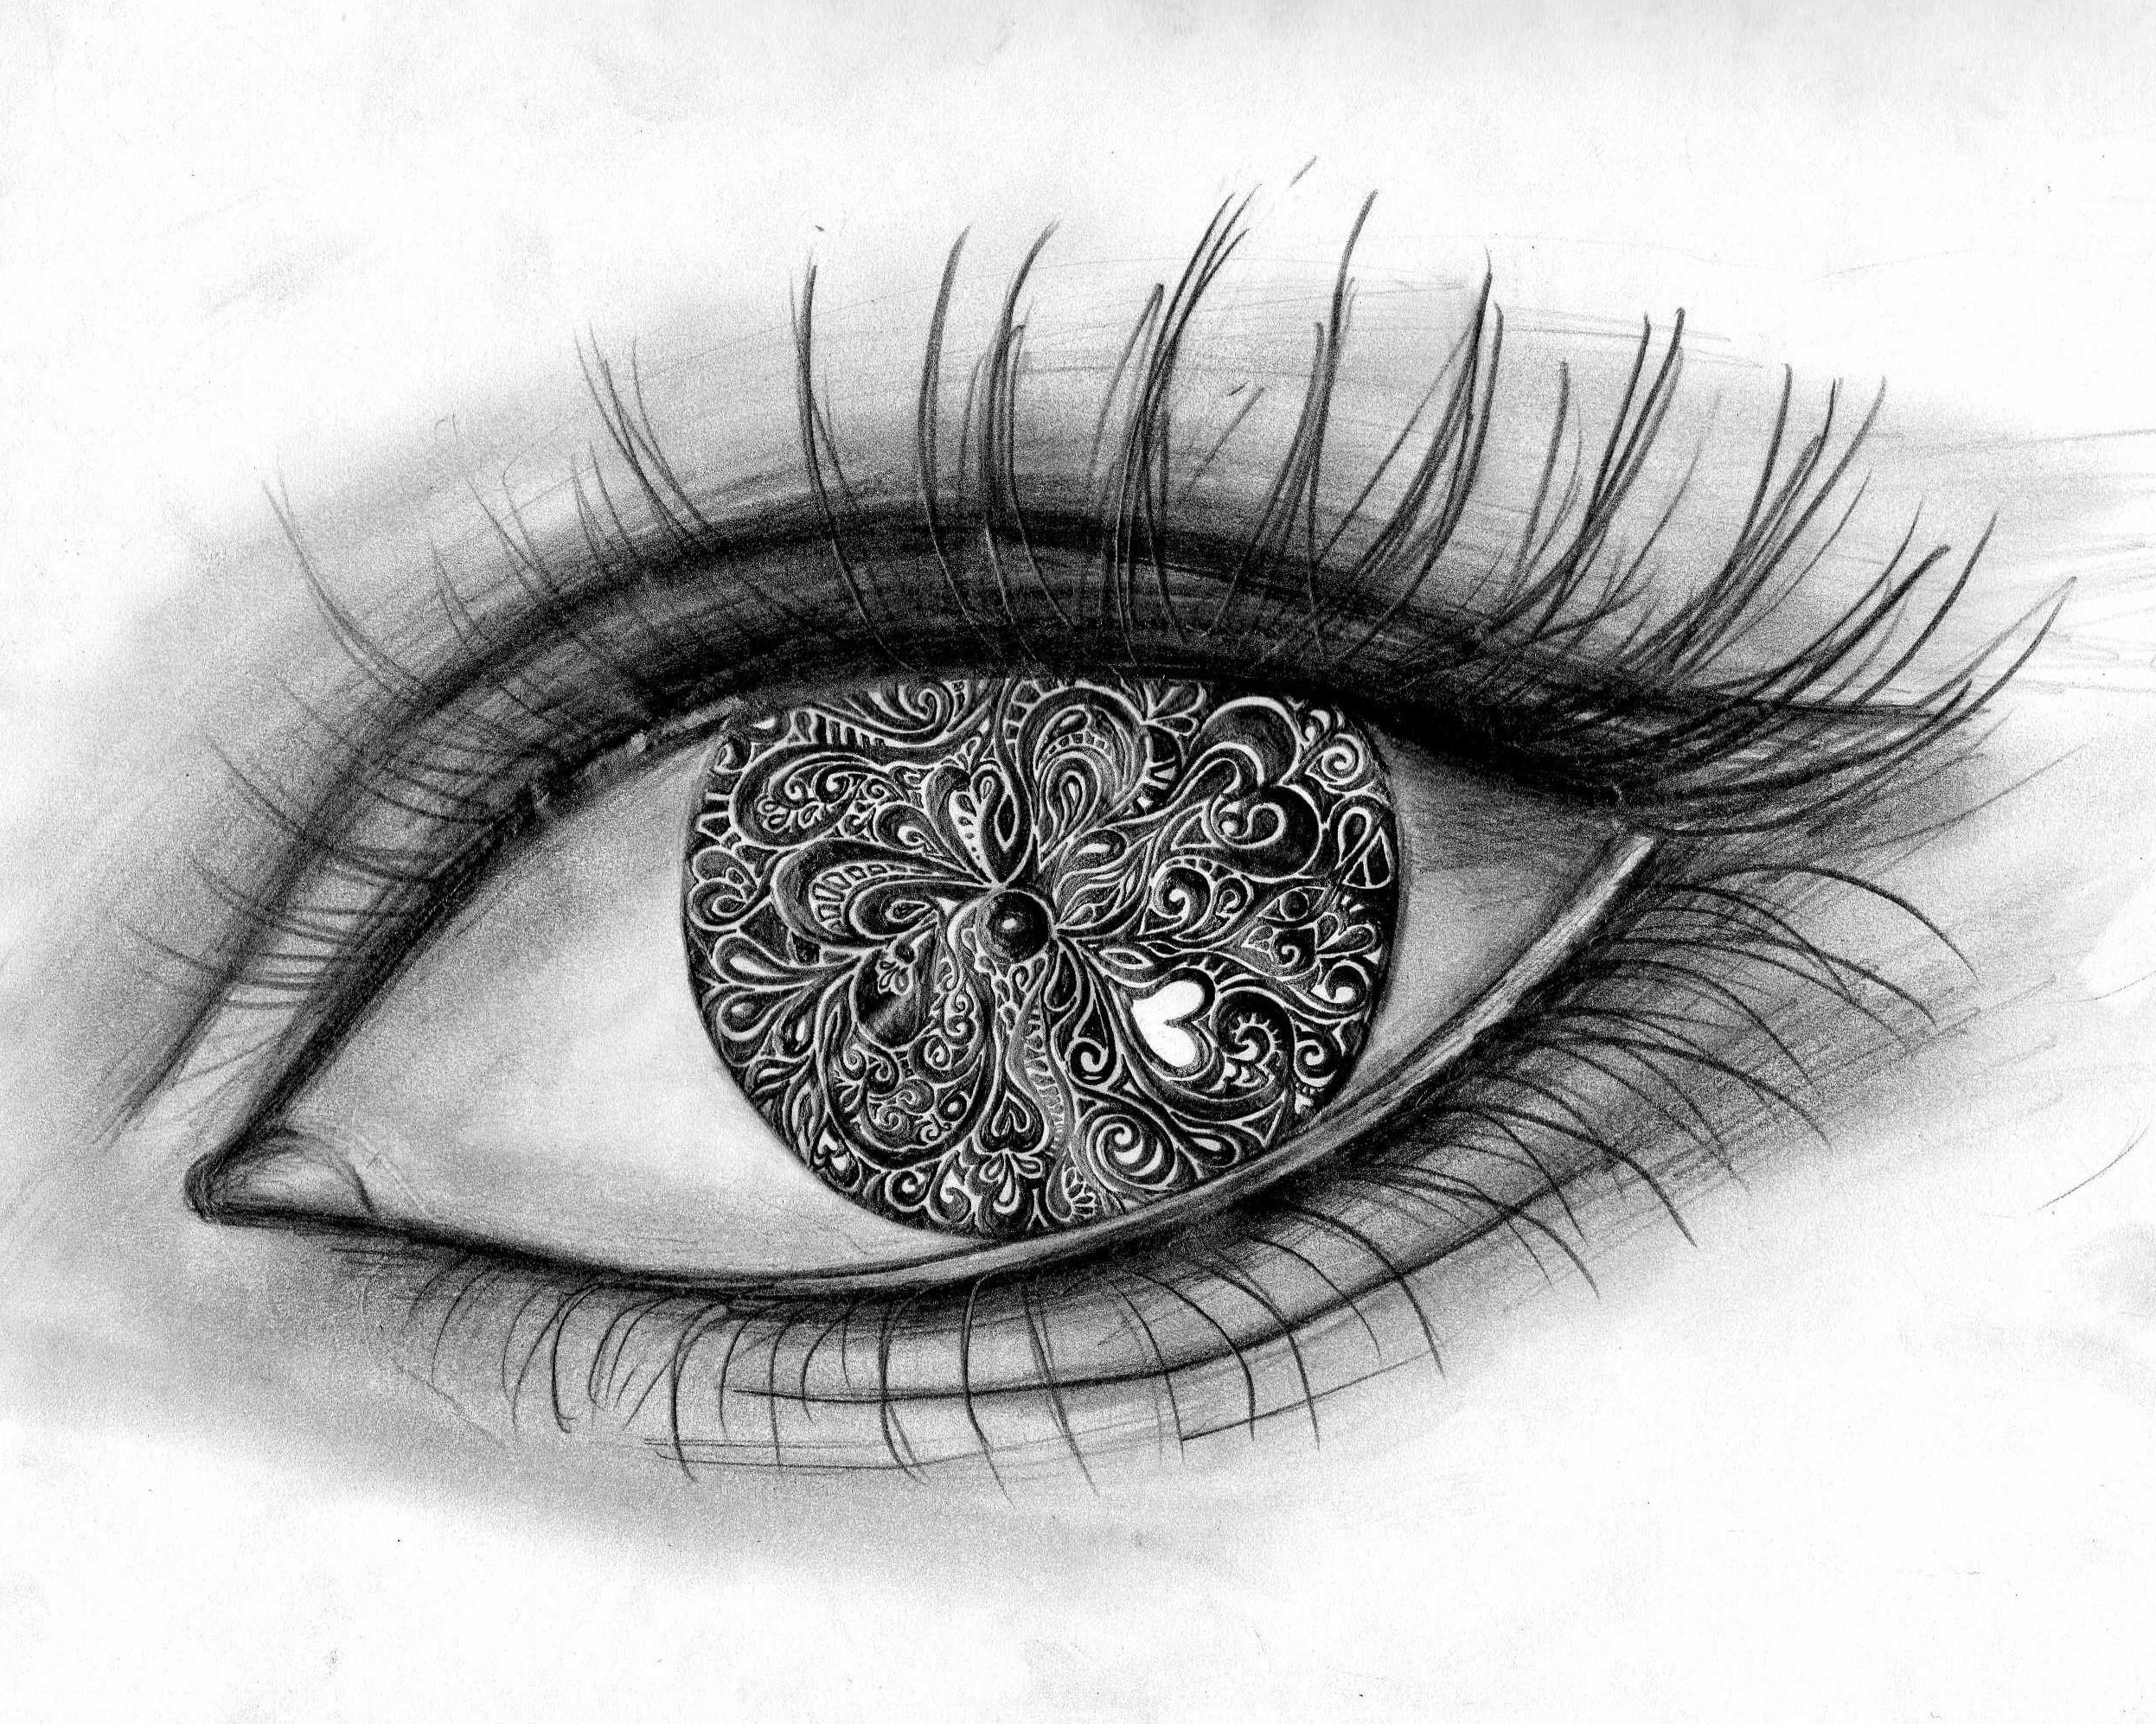 Cool drawings pics for gt cool drawings of eyes tumblr for Decoration drawing